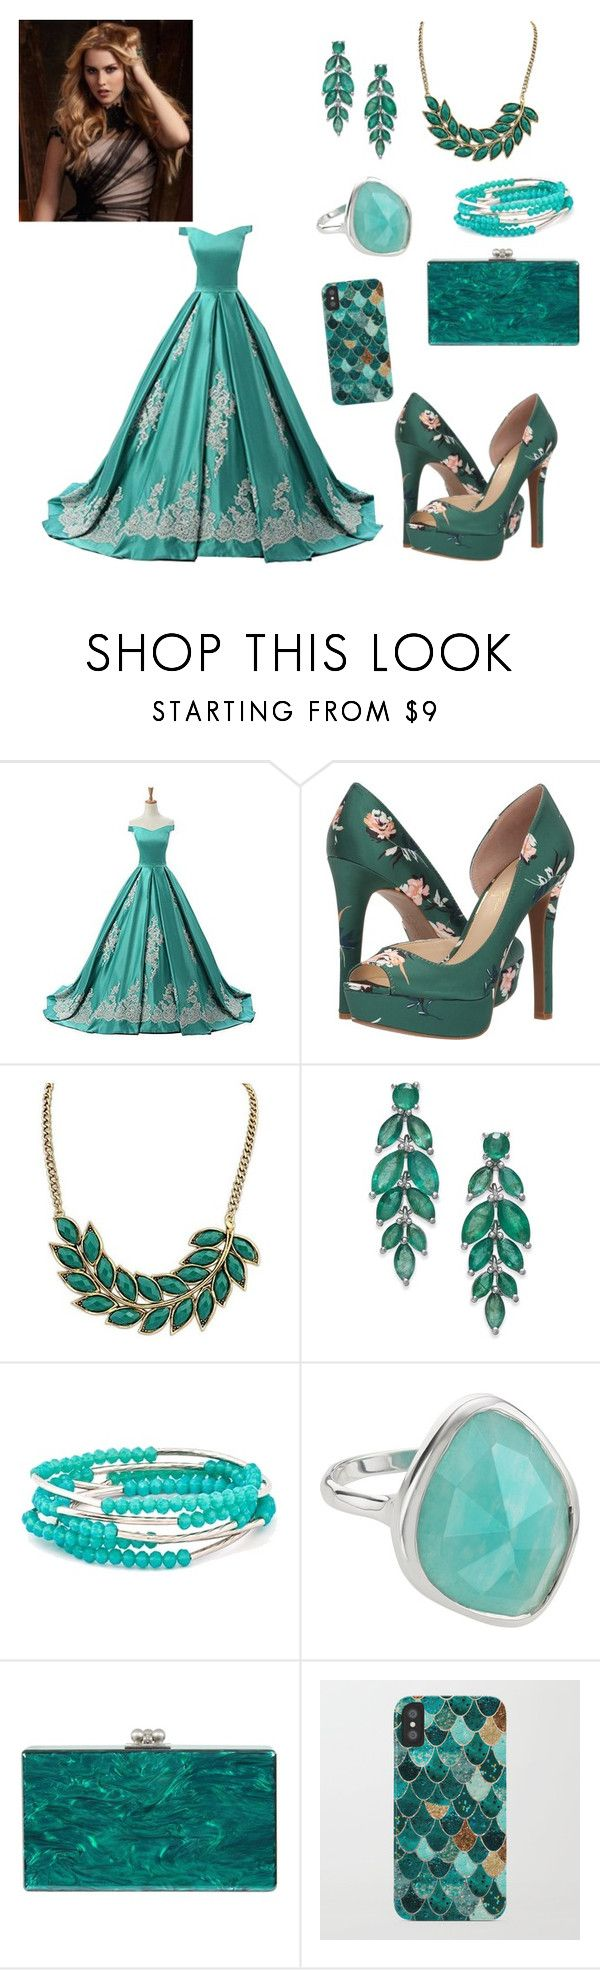 """""""baile dos salvadores"""" by nayanesalvadore ❤ liked on Polyvore featuring Jessica Simpson, WithChic, Chrysalis, Monica Vinader and Edie Parker"""